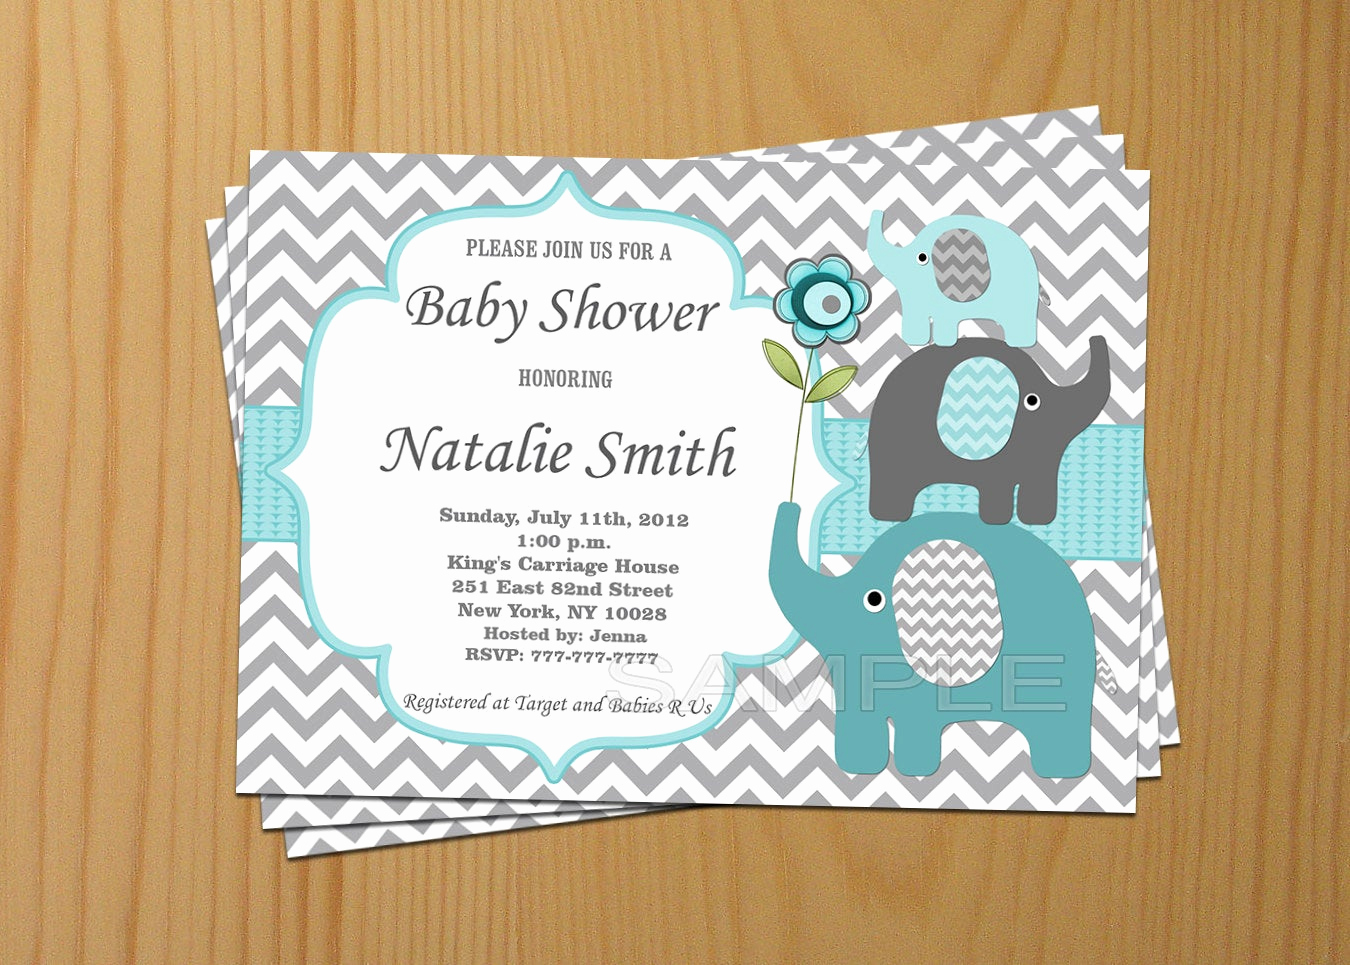 Baby Shower Invitation Images Beautiful Baby Shower Invitation Boy Elephant Baby Shower Invitation